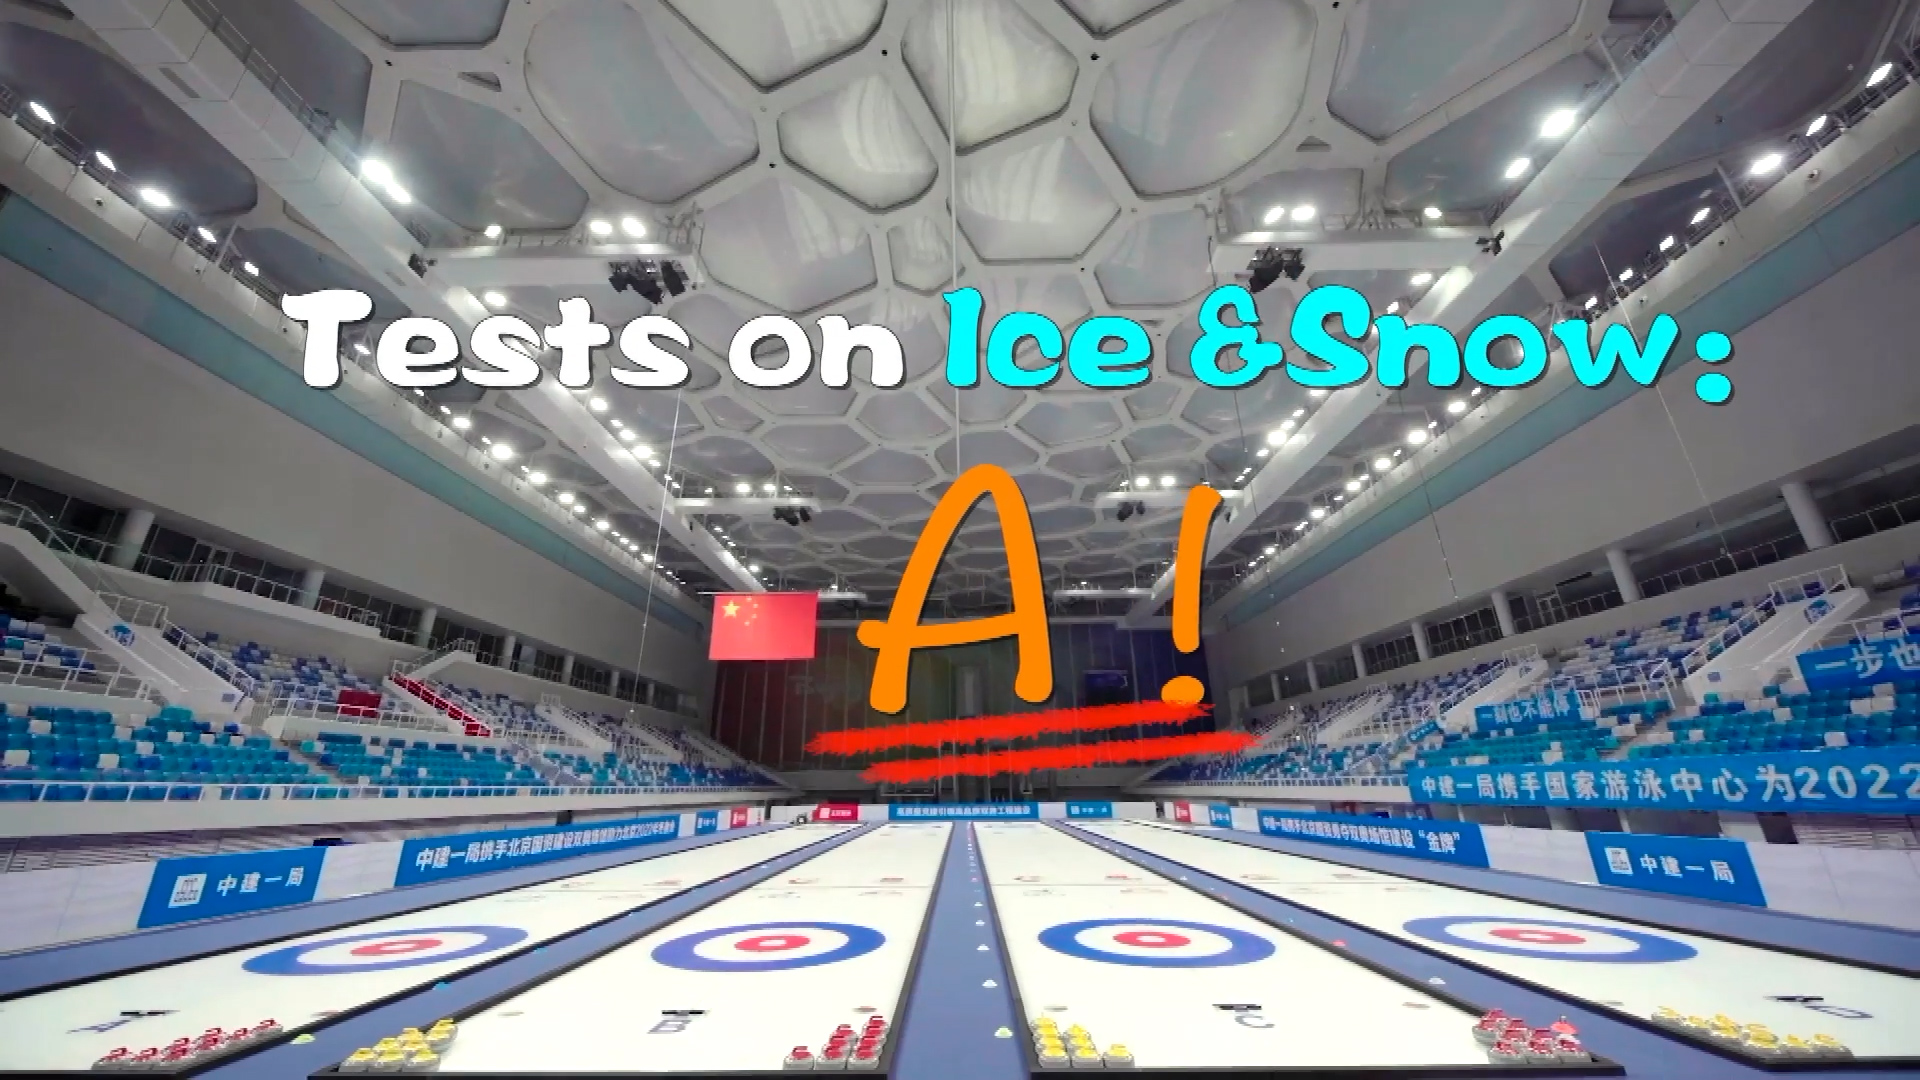 GLOBALink | Countdown to Beijing 2022: Tests on ice and snow: A!